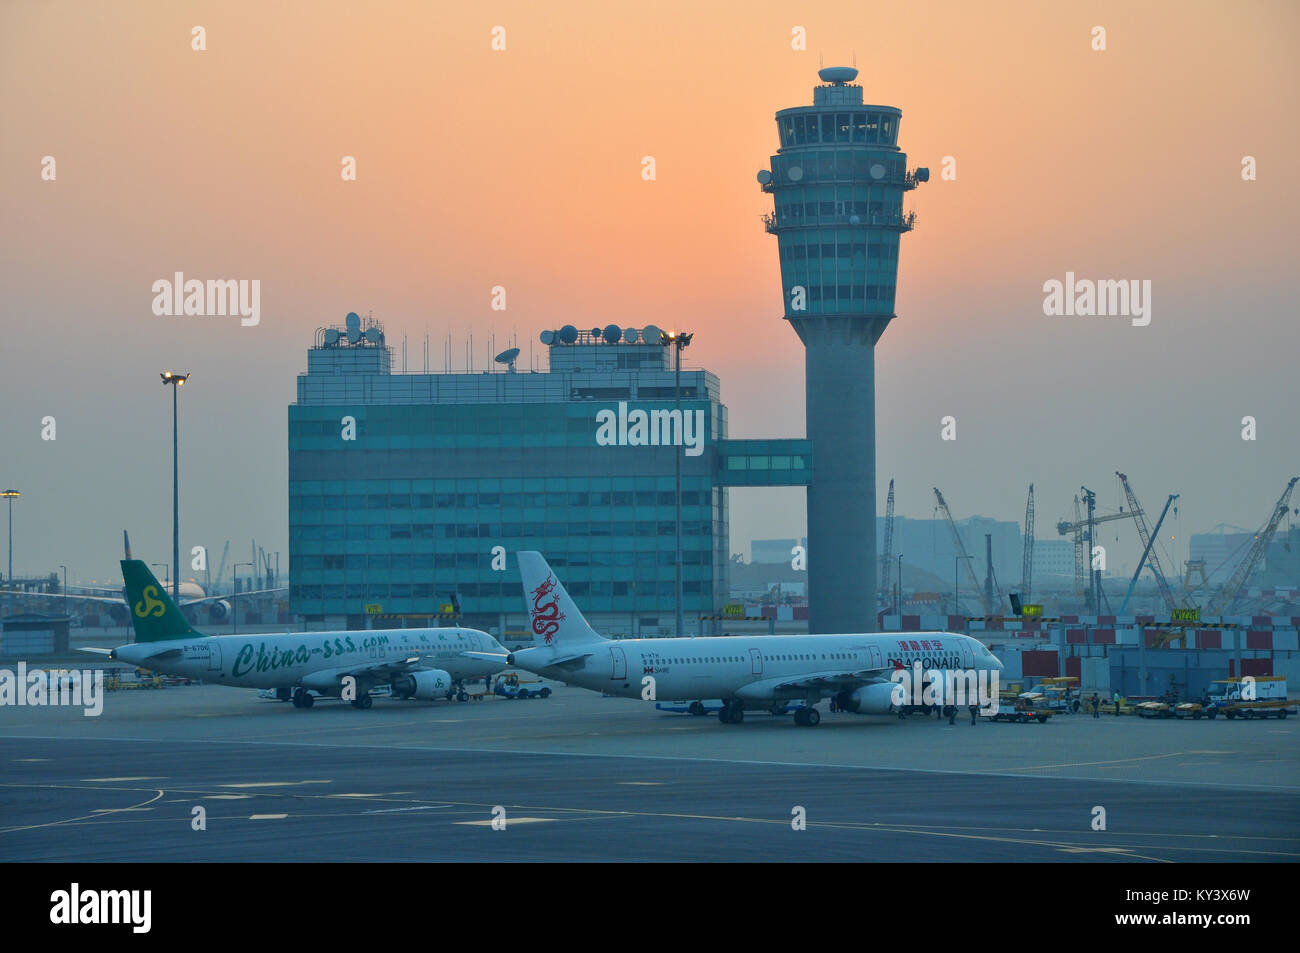 Hong Kong International Airport air traffic control tower with Spring Airlines Airbus A320 200 B-6706 and Dragonair - Stock Image